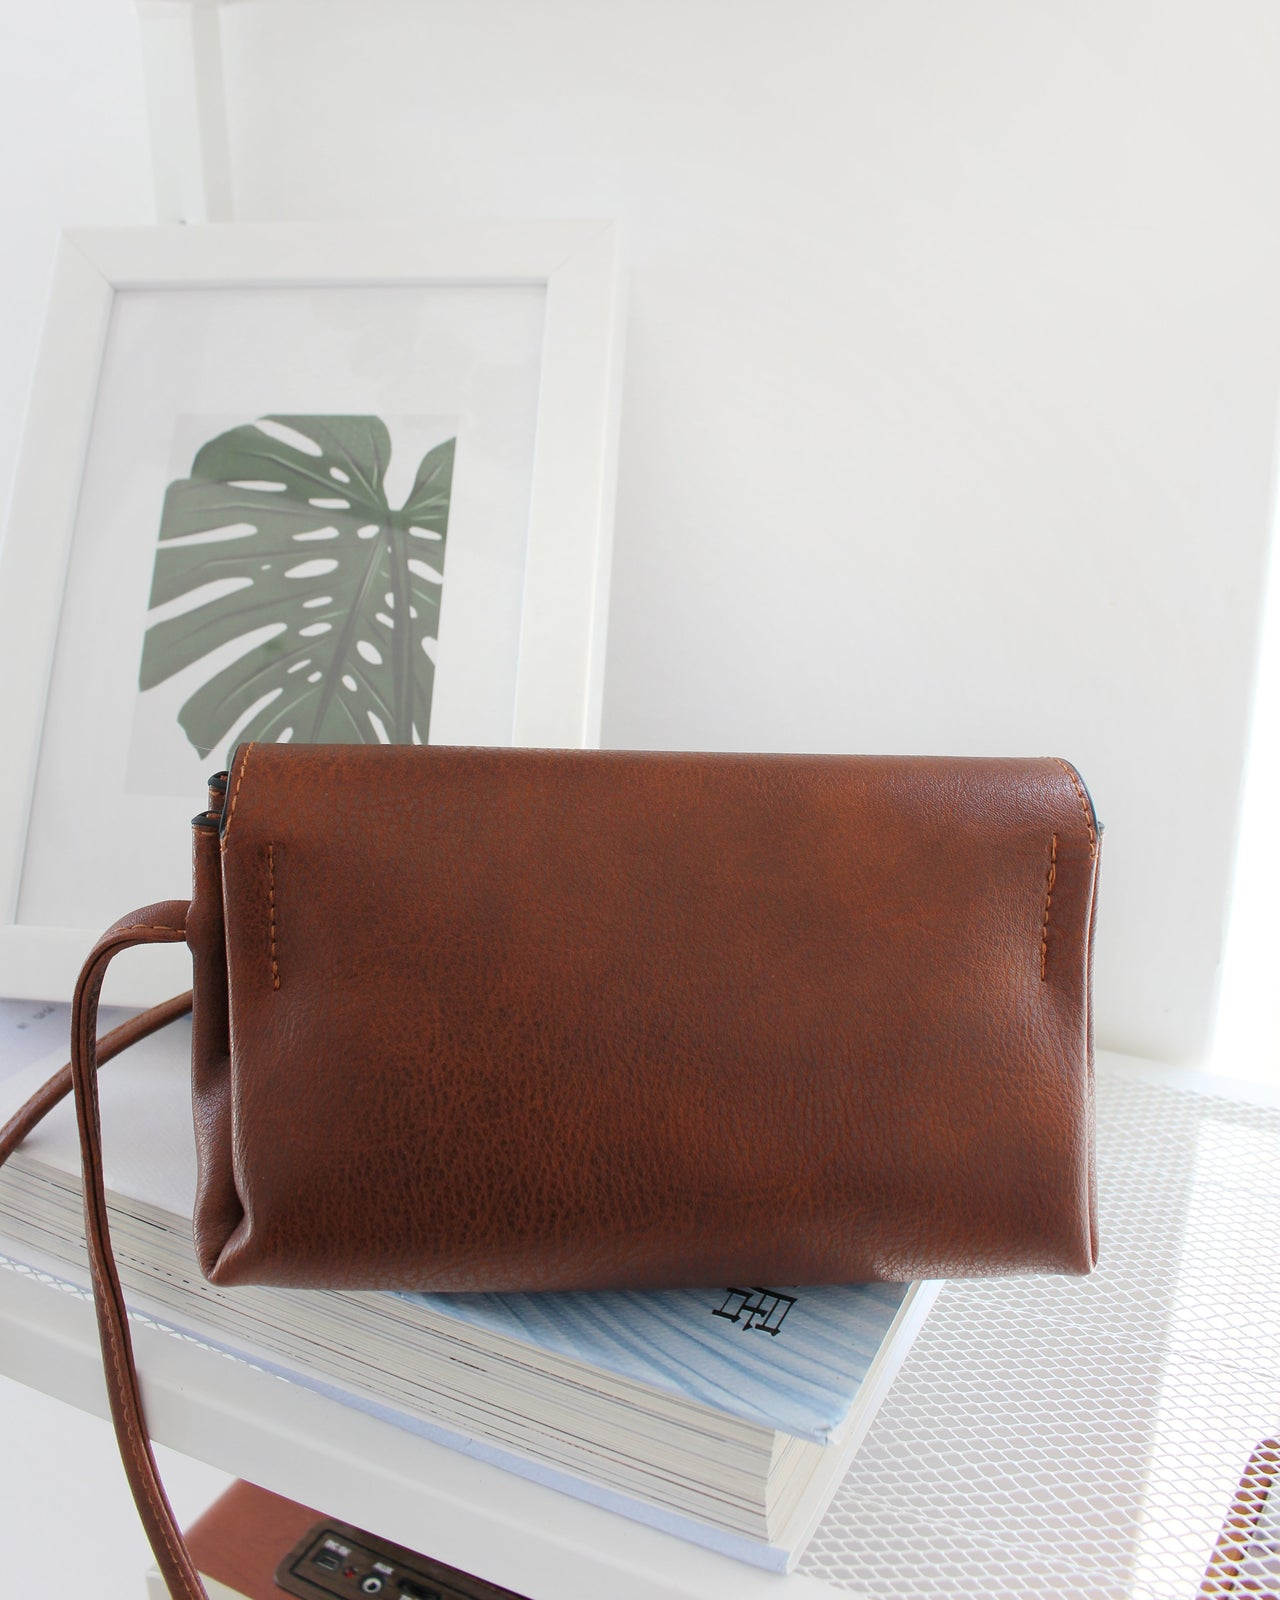 Brown Leather Sling Bag - LovelyMadness Clothing Online Fashion Malaysia